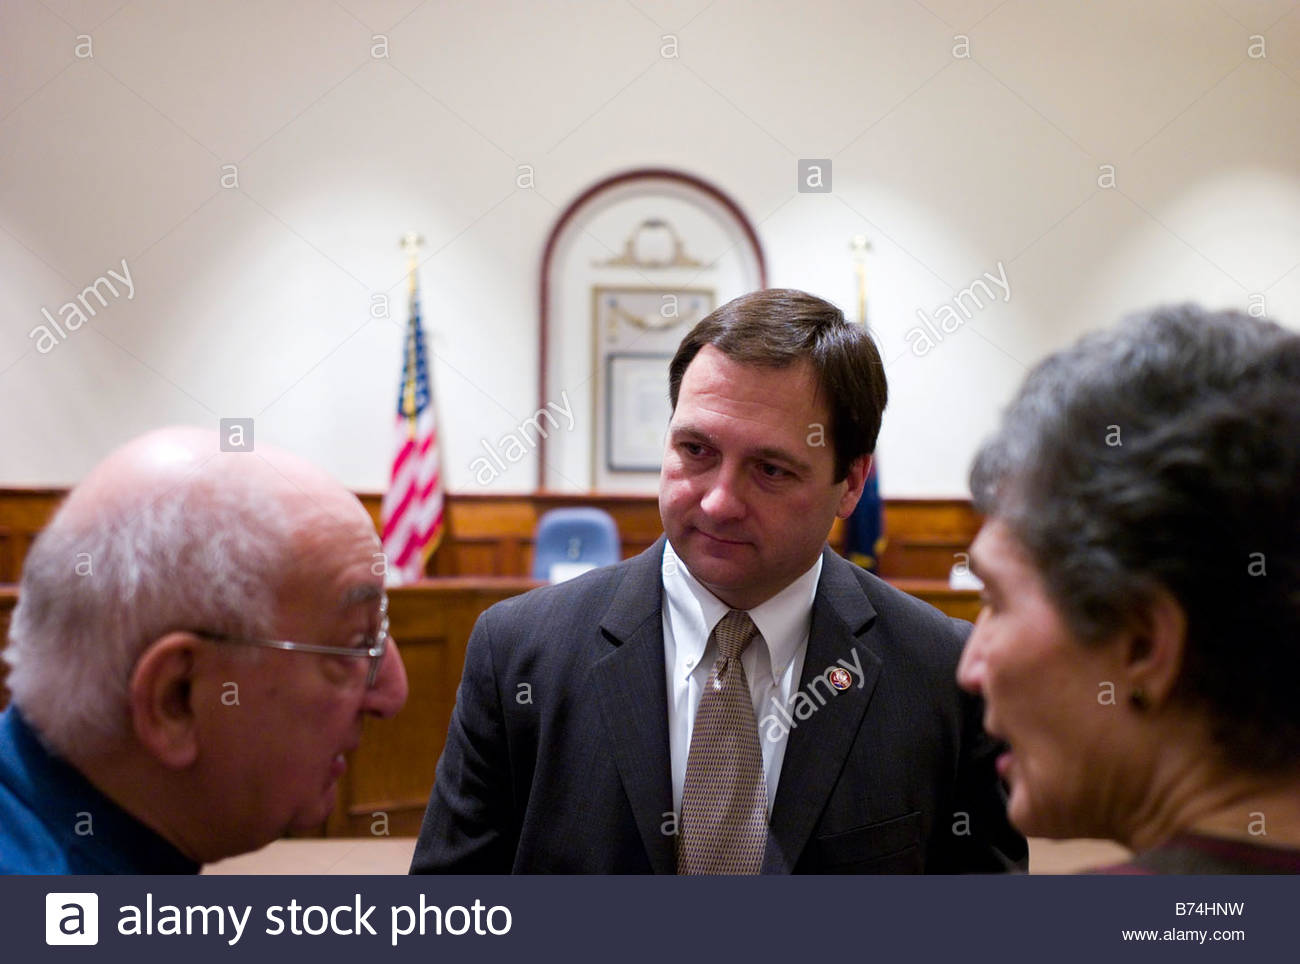 WILLIAMSPORT PA March 27 Albert and Susan Alexander talk with U S Rep Christopher P Carney D Pa at City Hall after - Stock Image